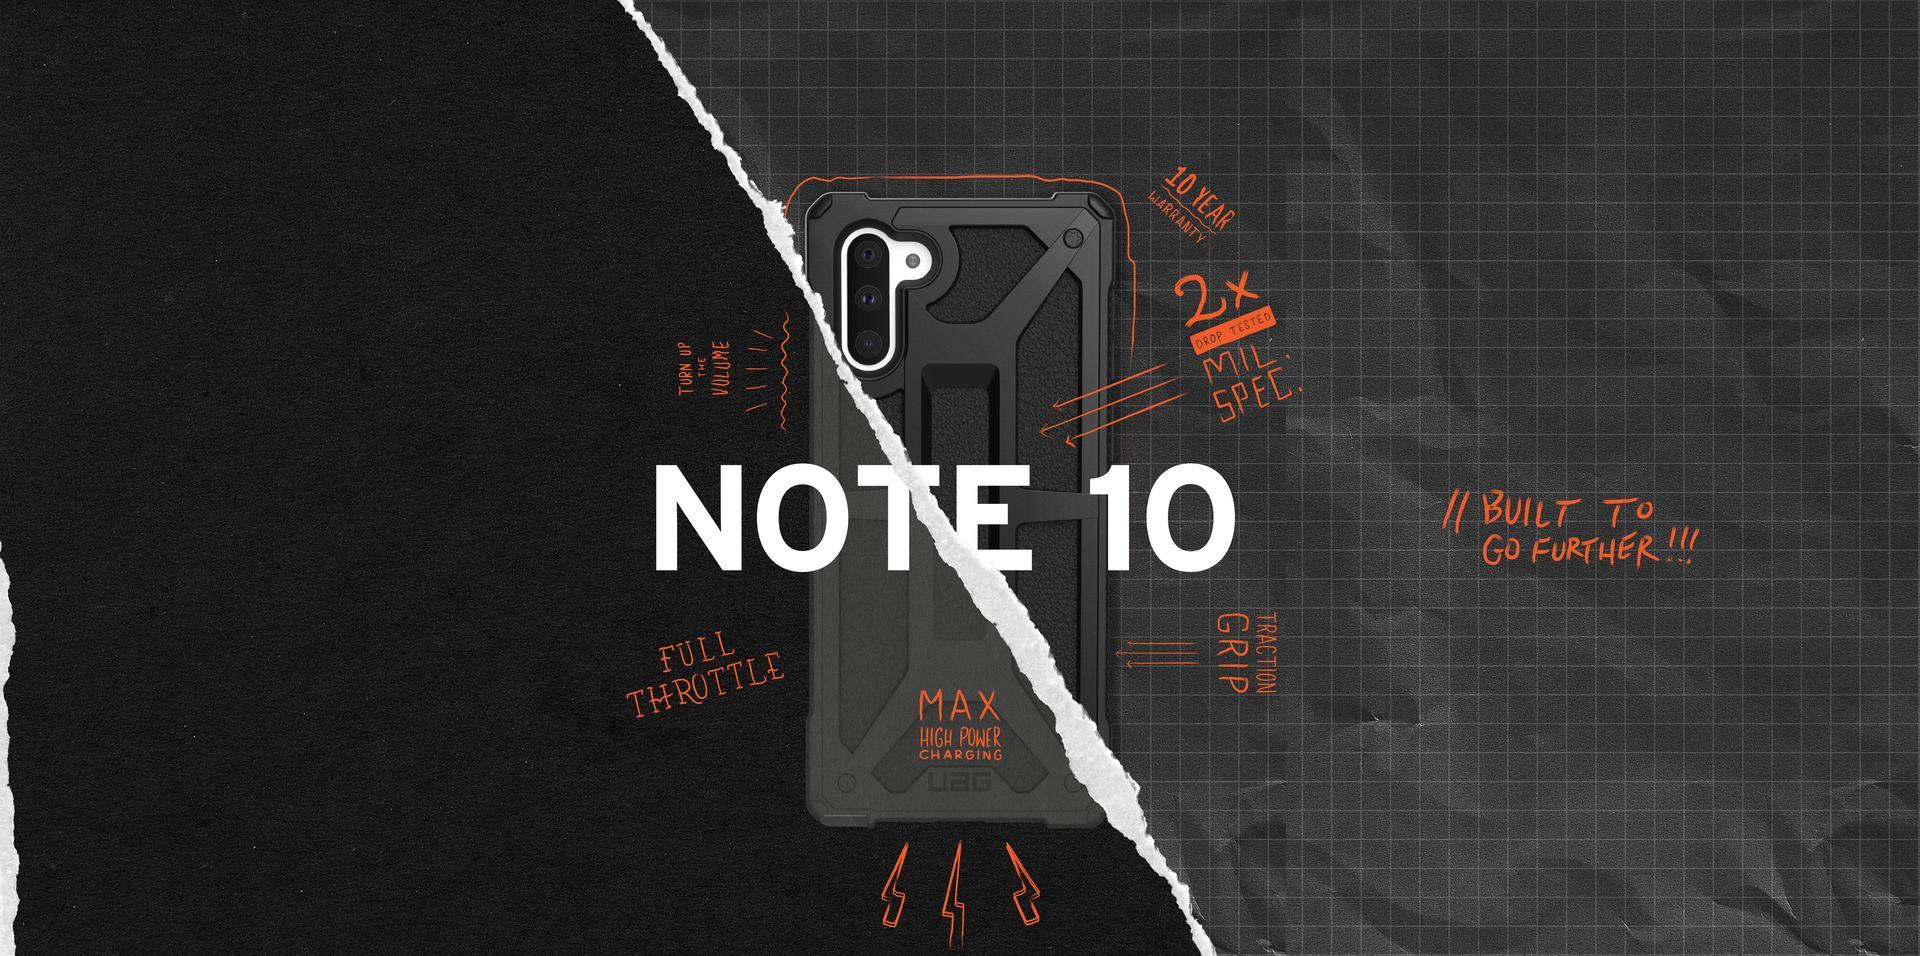 Best UAG Samsung Galaxy Note 10 Plus/10+ Cases & Covers in Singapore